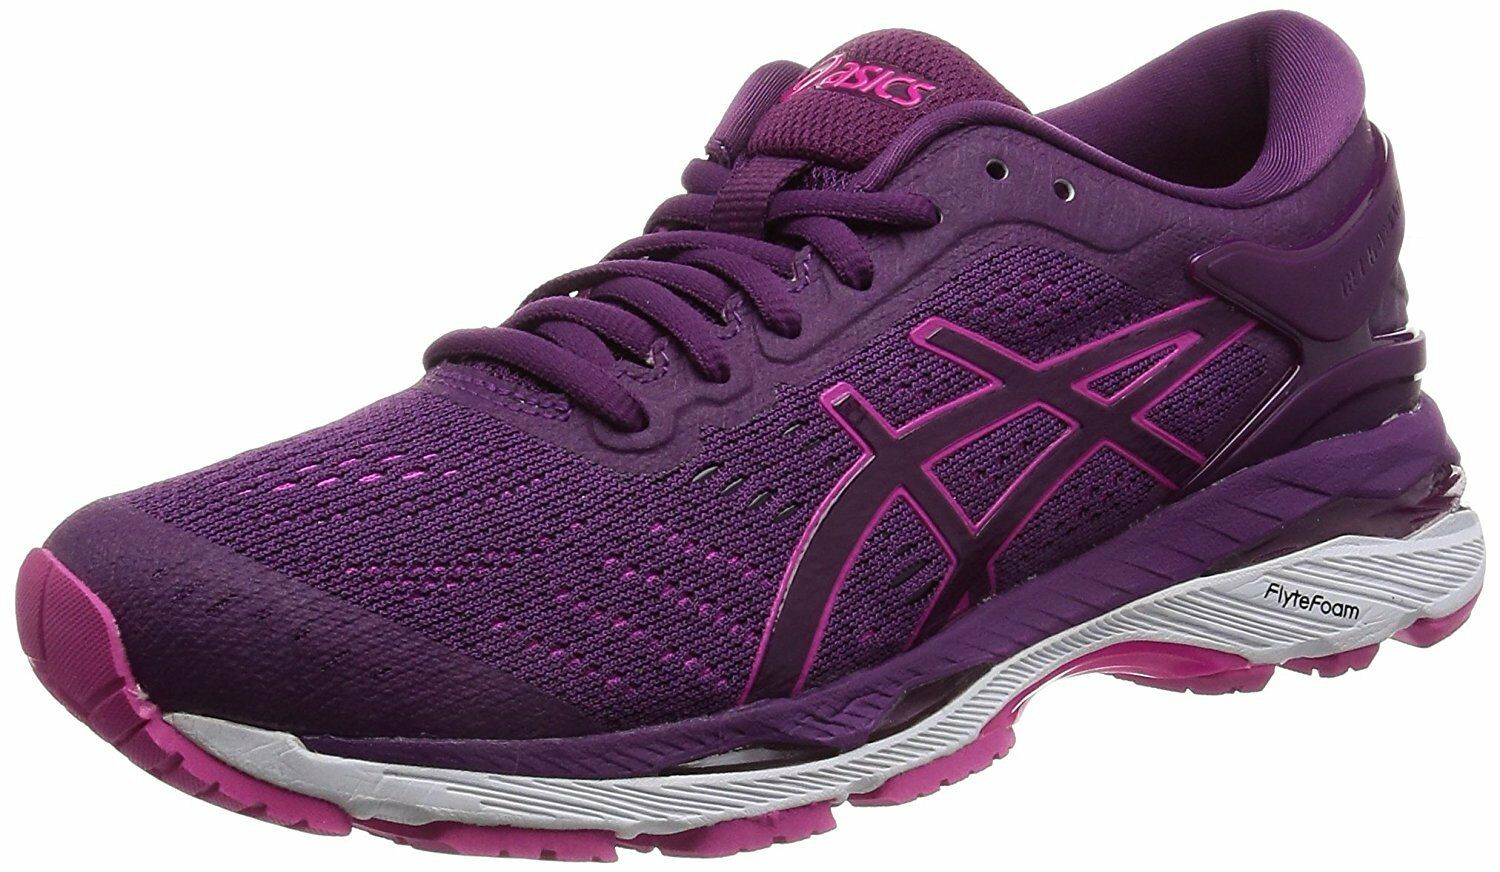 ASICS Running Shoes LADY GEL-KAYANO24 TJG758 Prune Pink Glow US7(24cm)